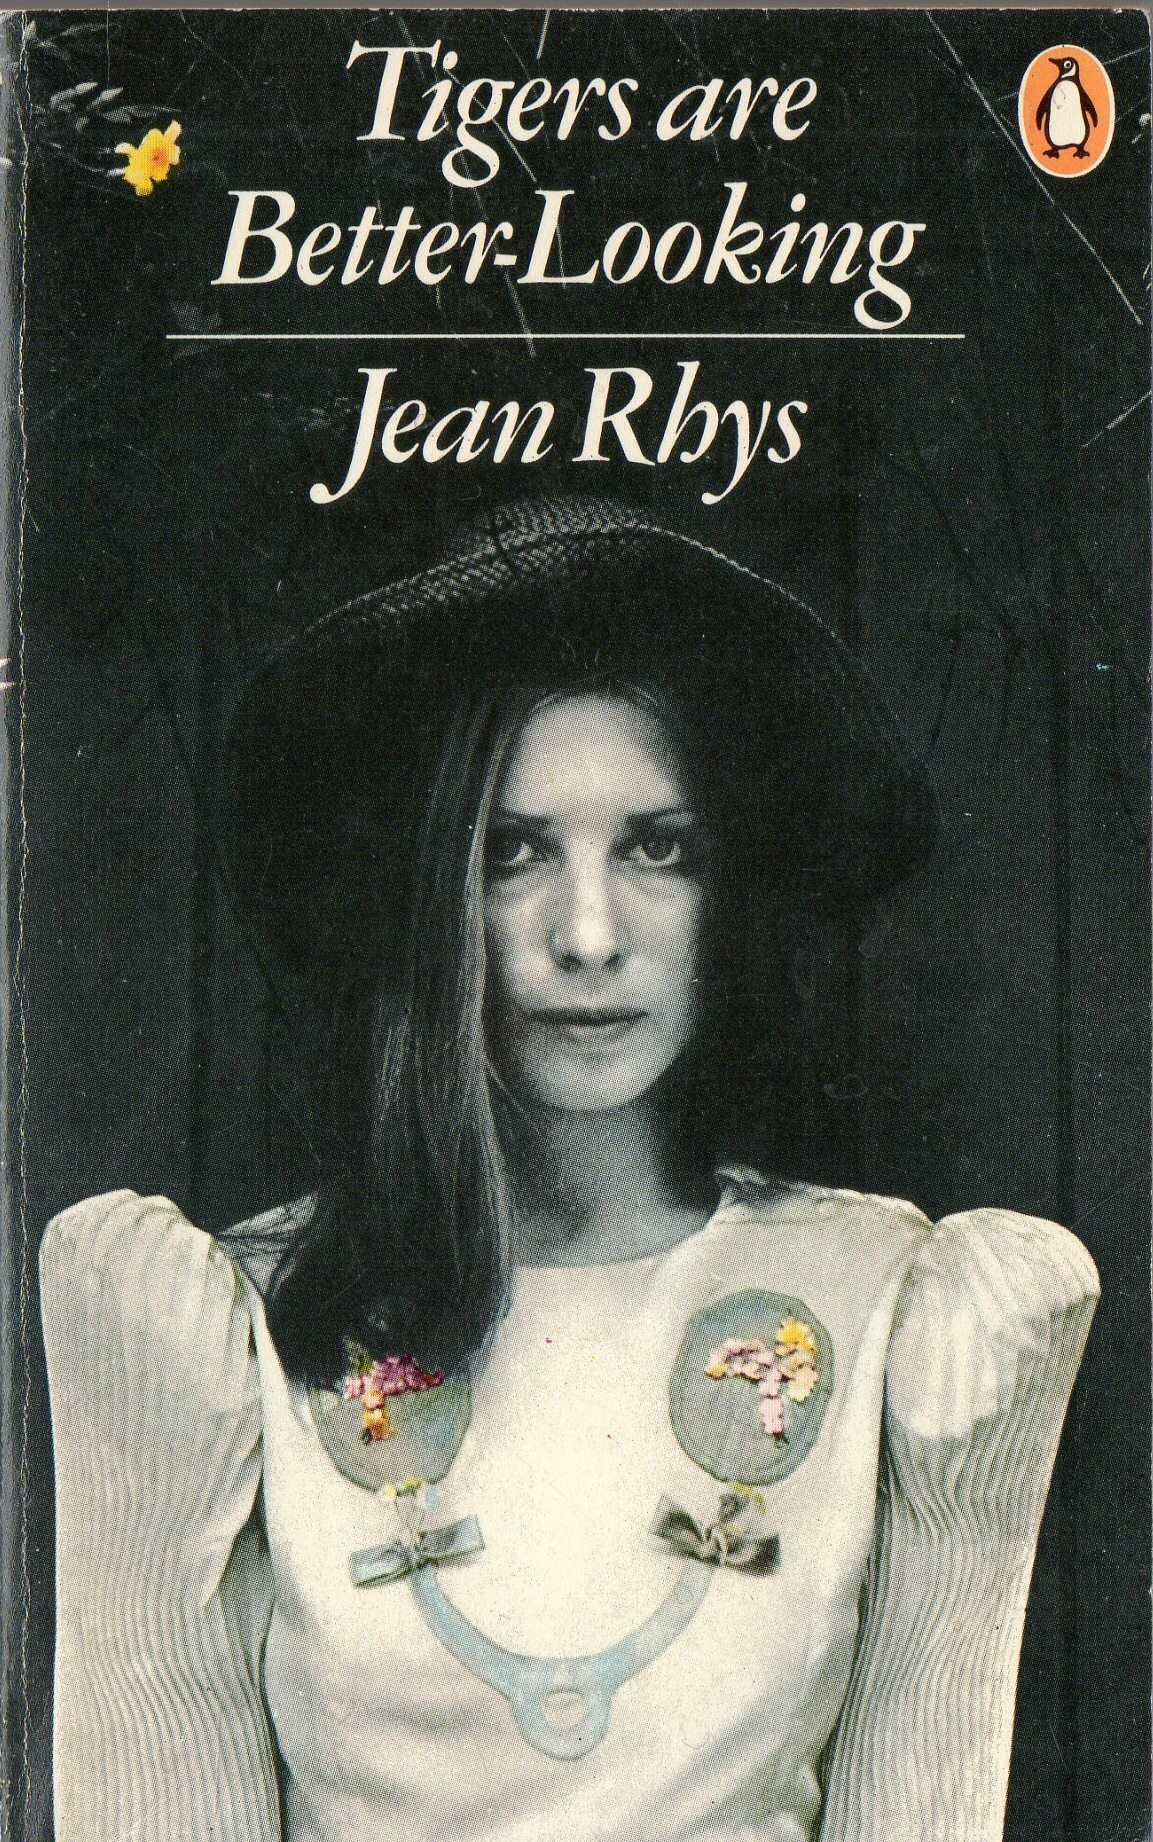 Vogue Poland Editor-In-Chief Filip Niedenthal selects  Tigers Are Better-Looking  by Jean Rhys